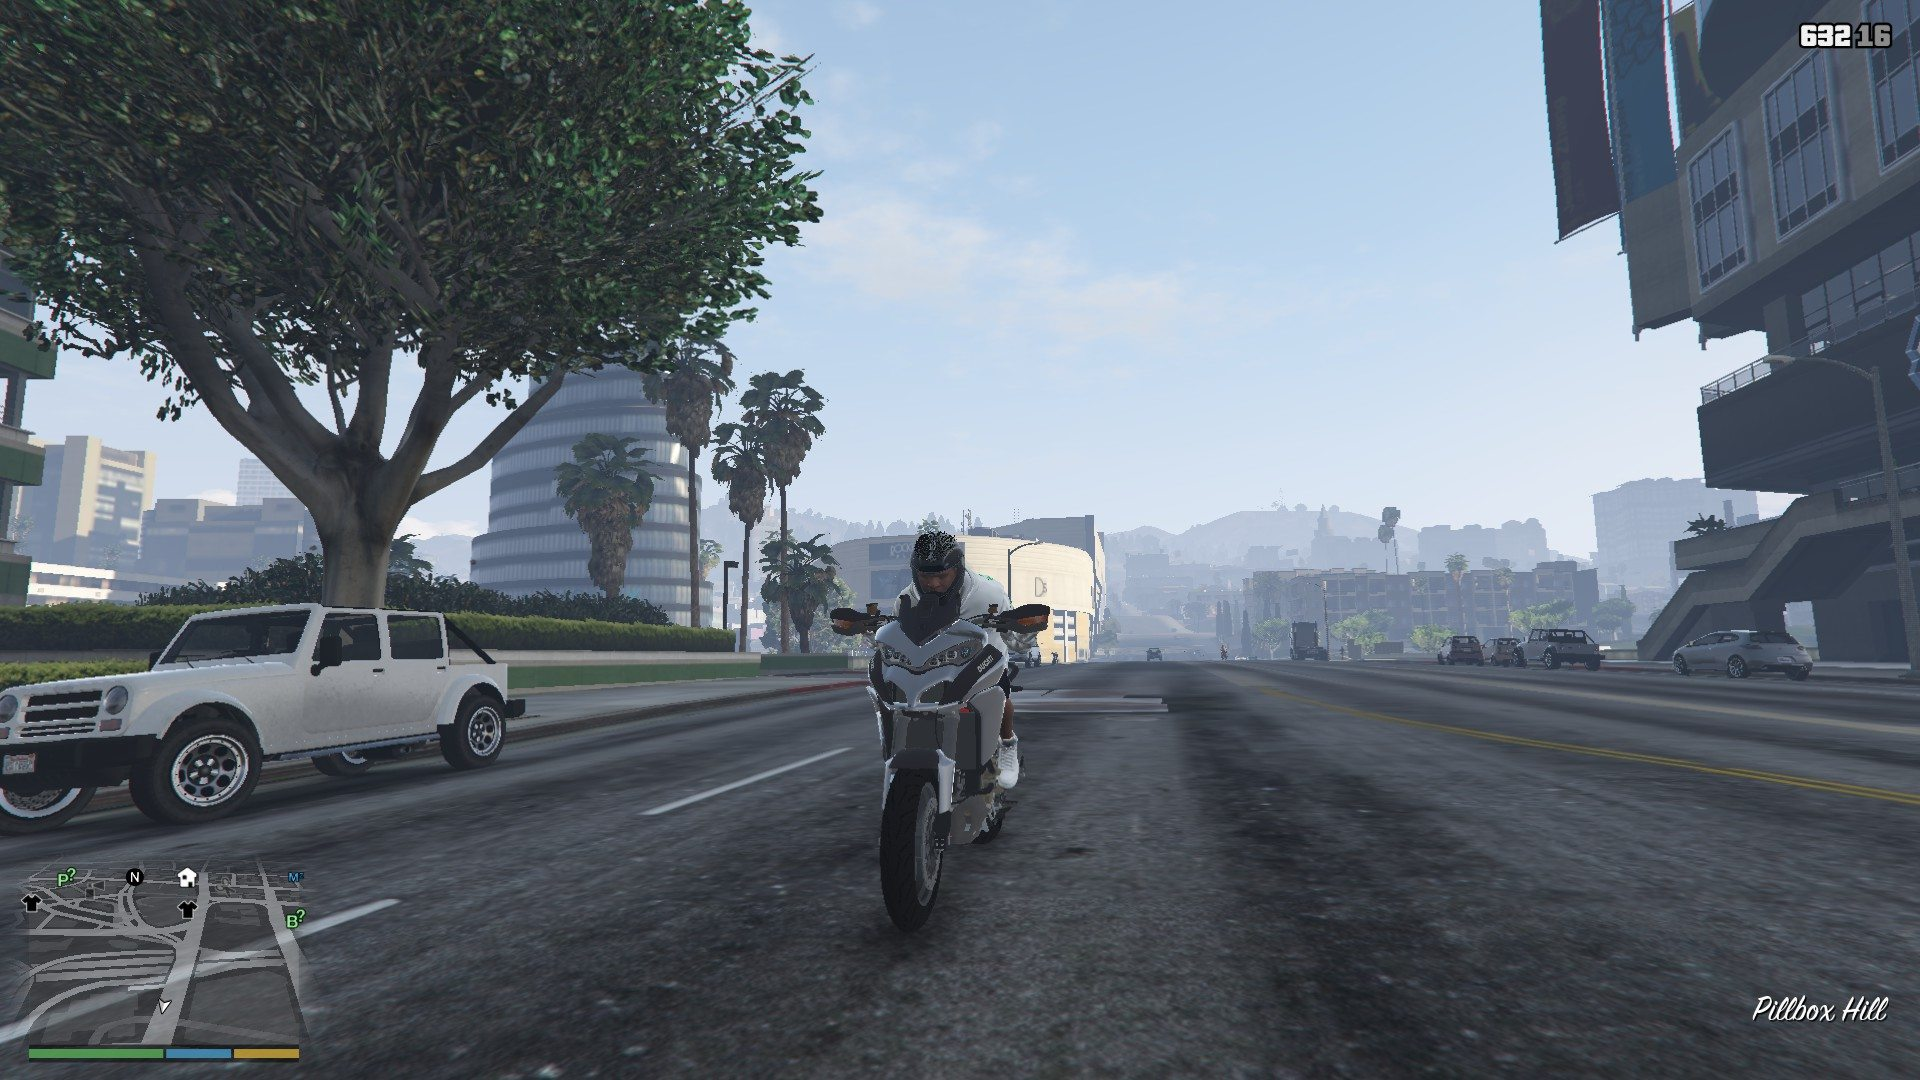 Ducati Multistrada 2015 GTA5 Mods (13)